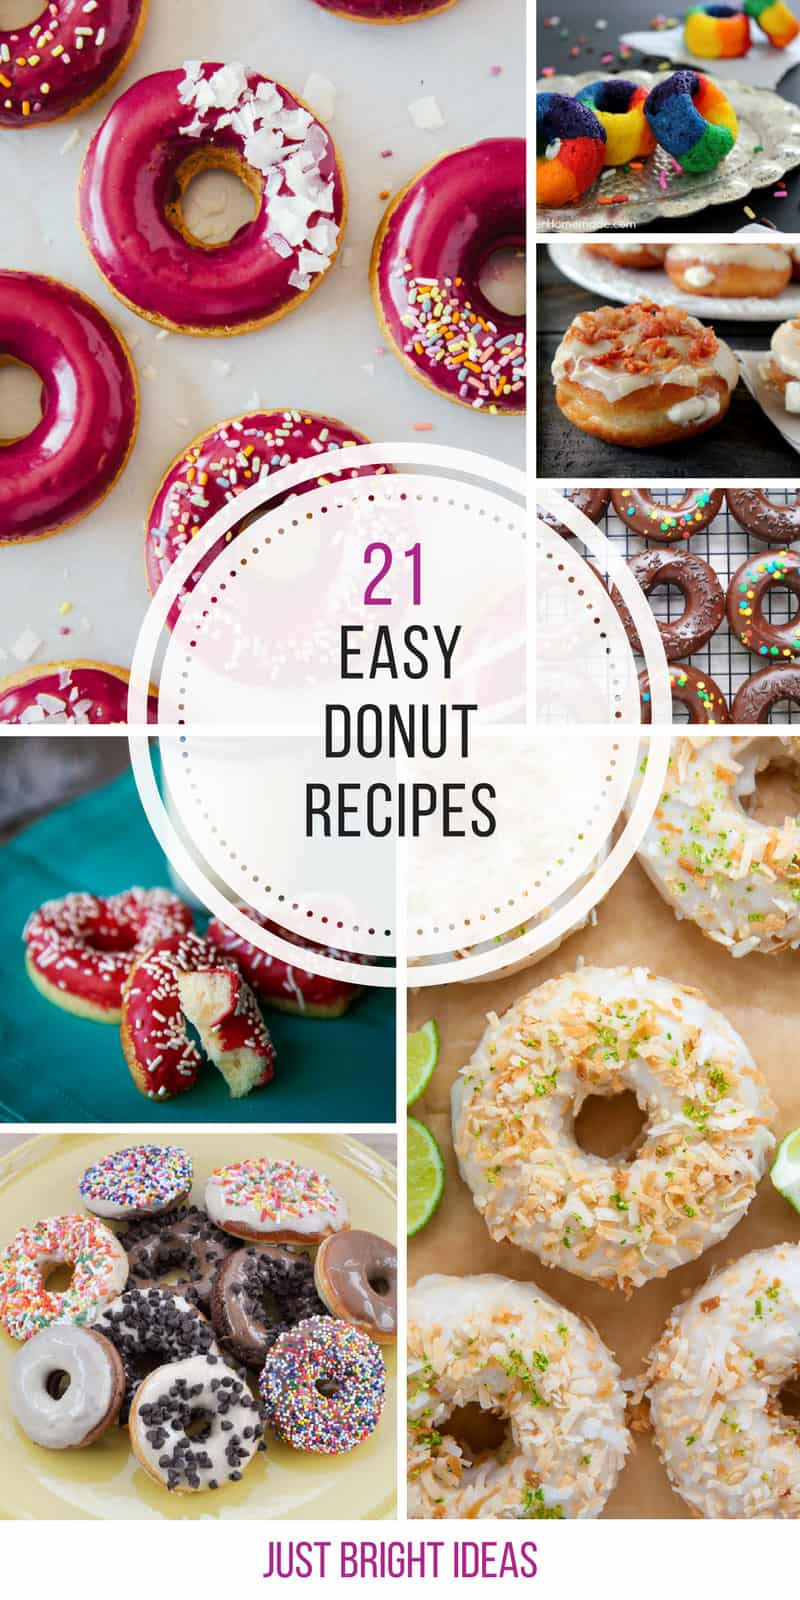 Who knew homemade donuts were so easy to make! Thanks for sharing!